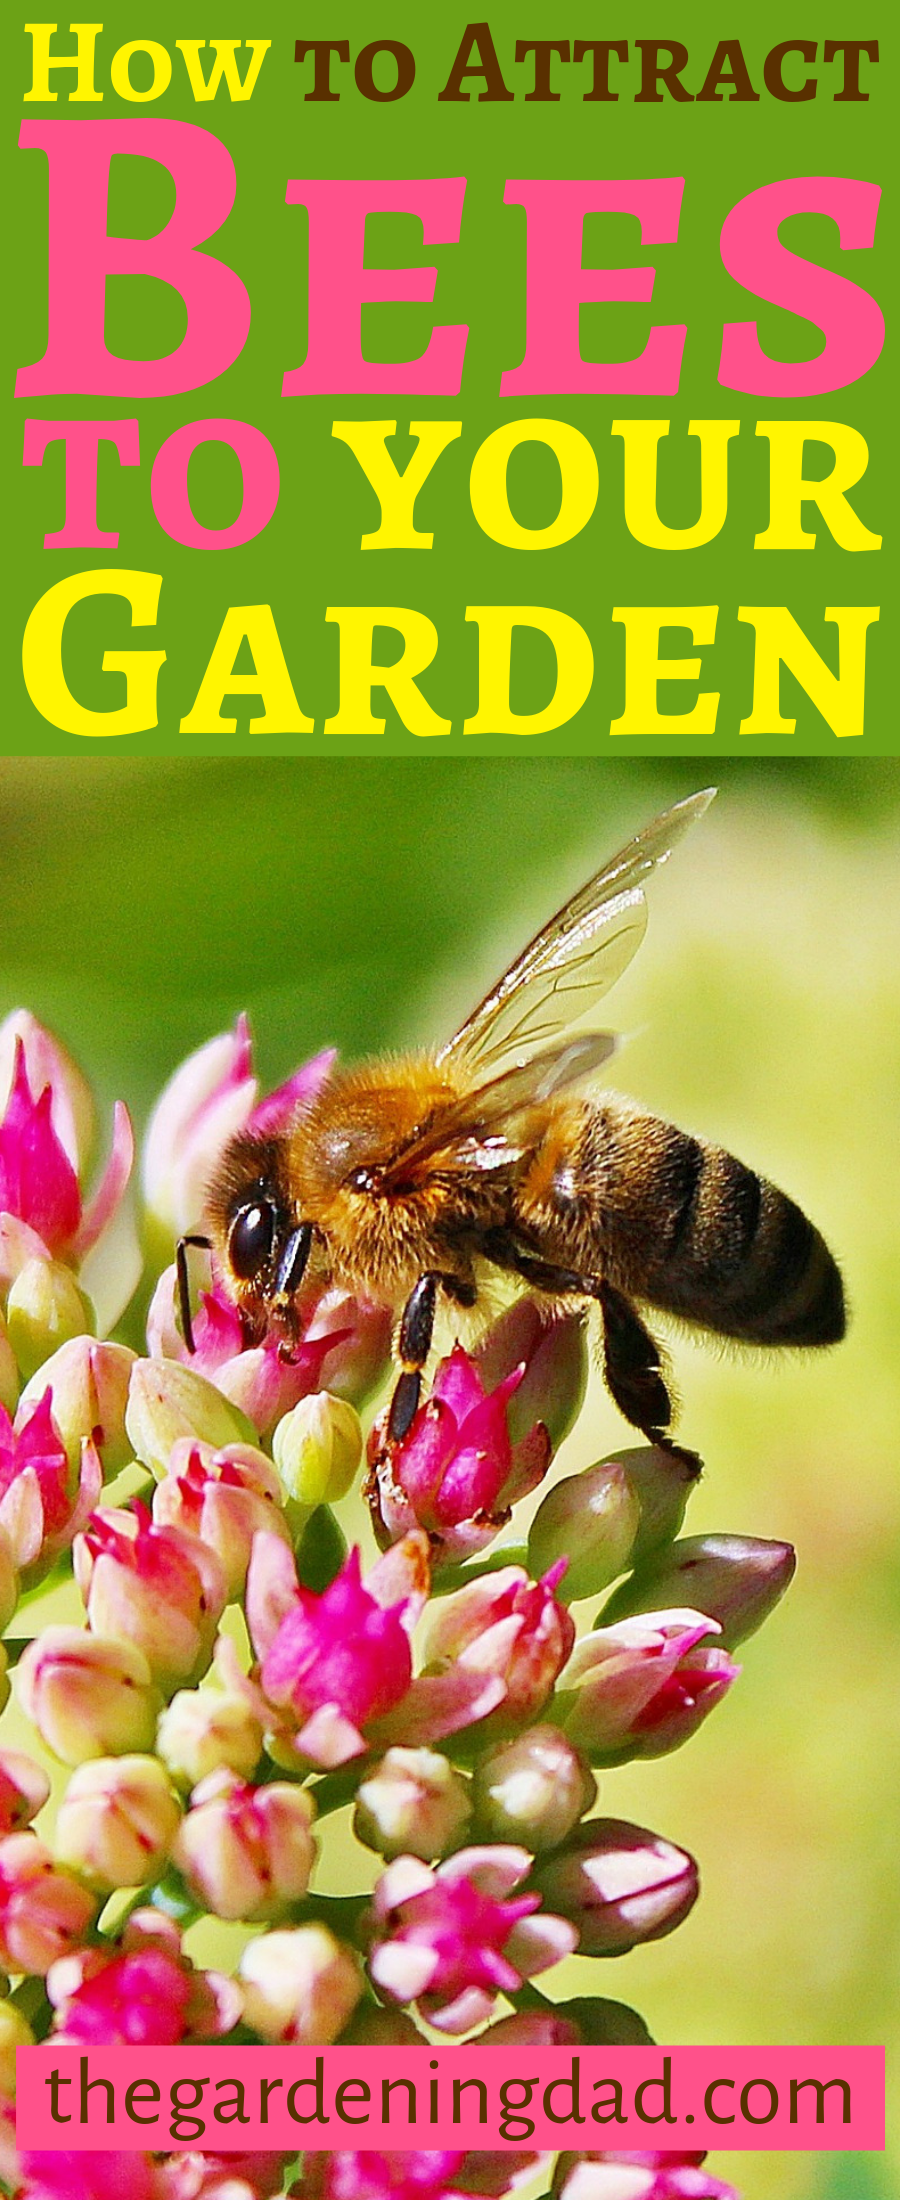 50 USEFUL Plants that Attract Bees to Your Garden Plants